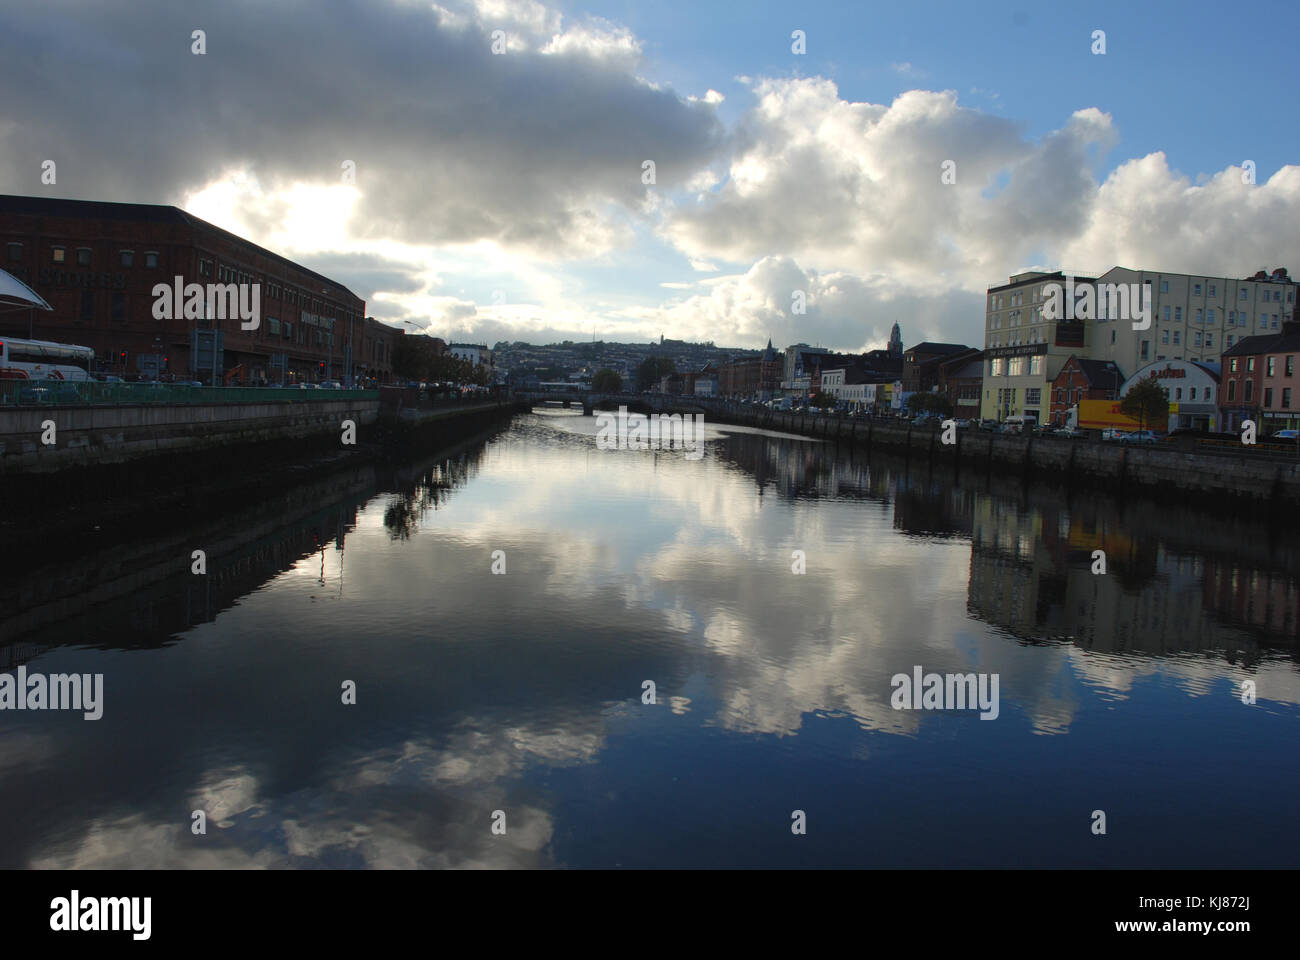 River Lee - Cork, Ireland Stock Photo